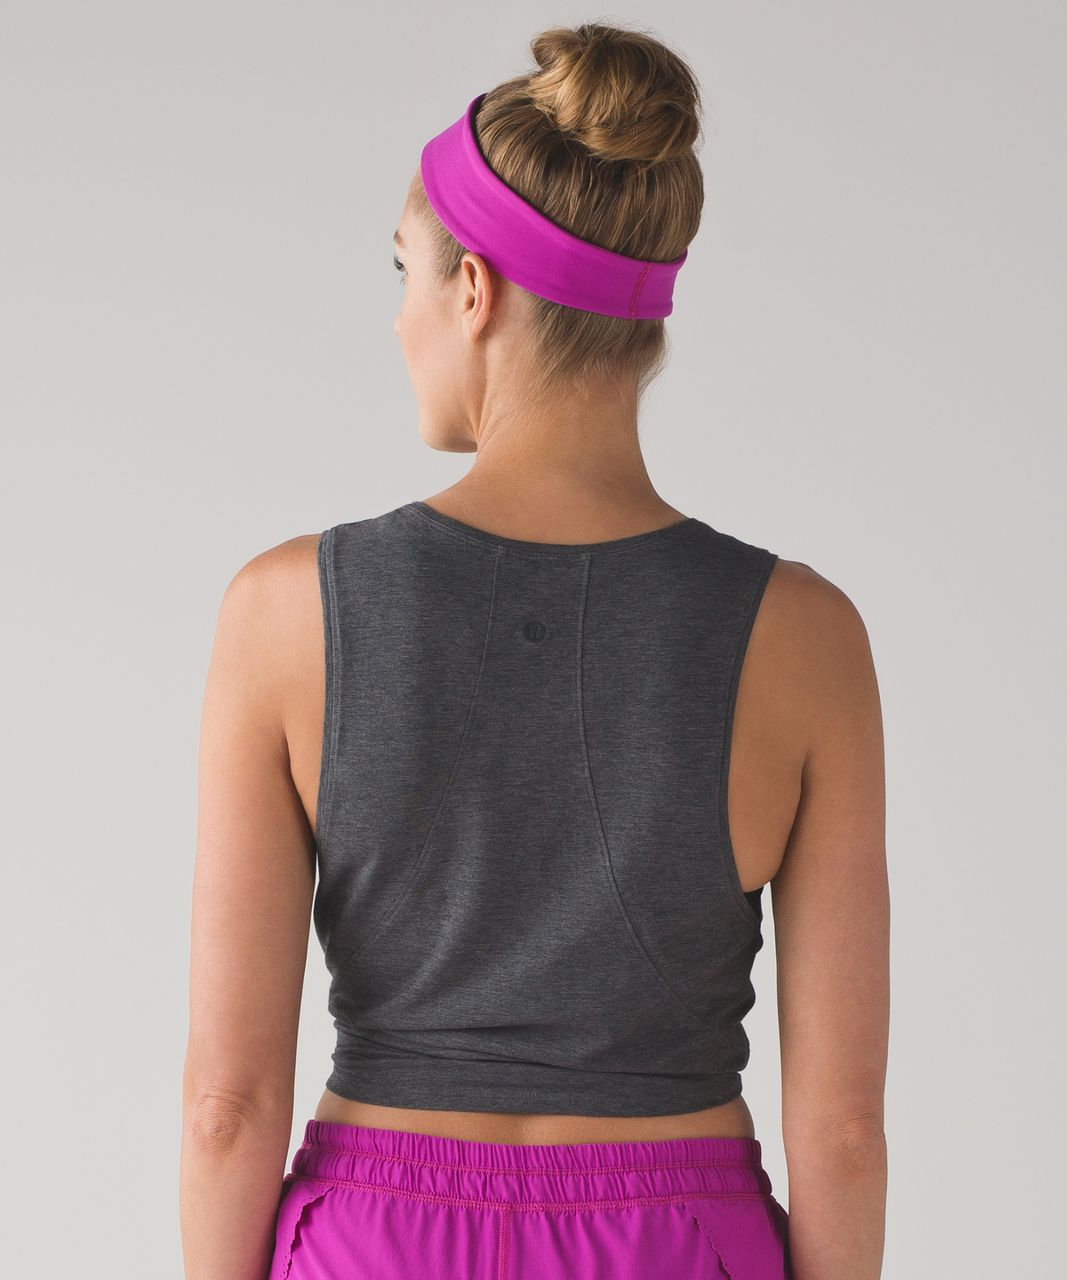 Lululemon Fly Away Tamer Headband II - Polar Pink